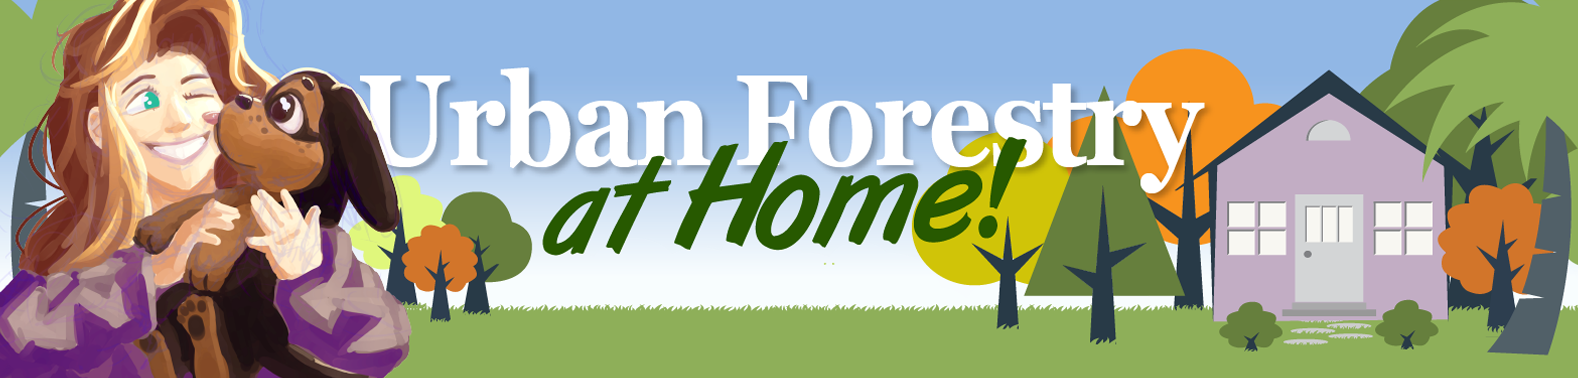 Urban Forestry at Home